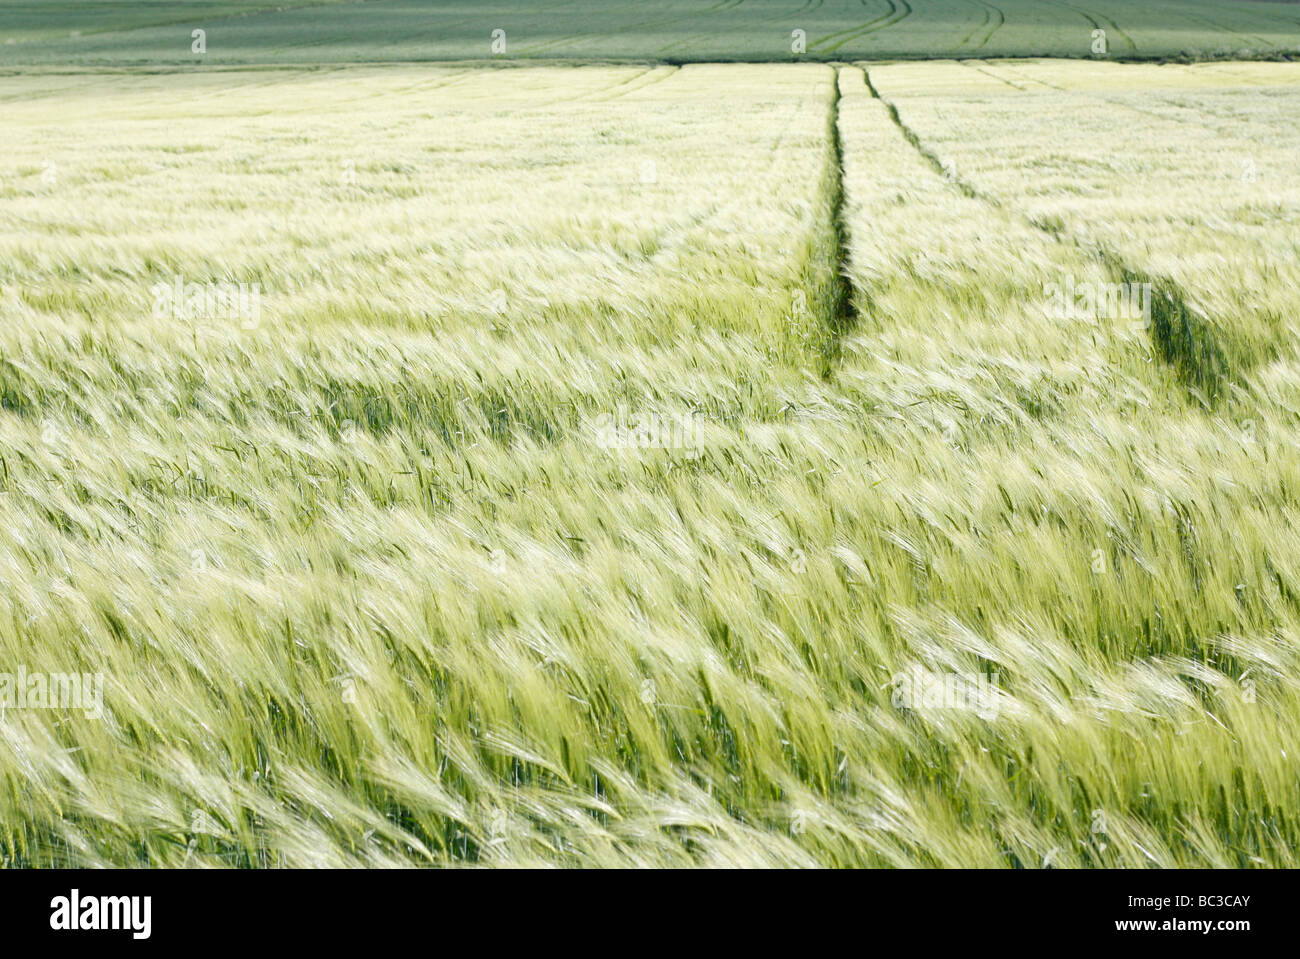 Remote oat field - Stock Image